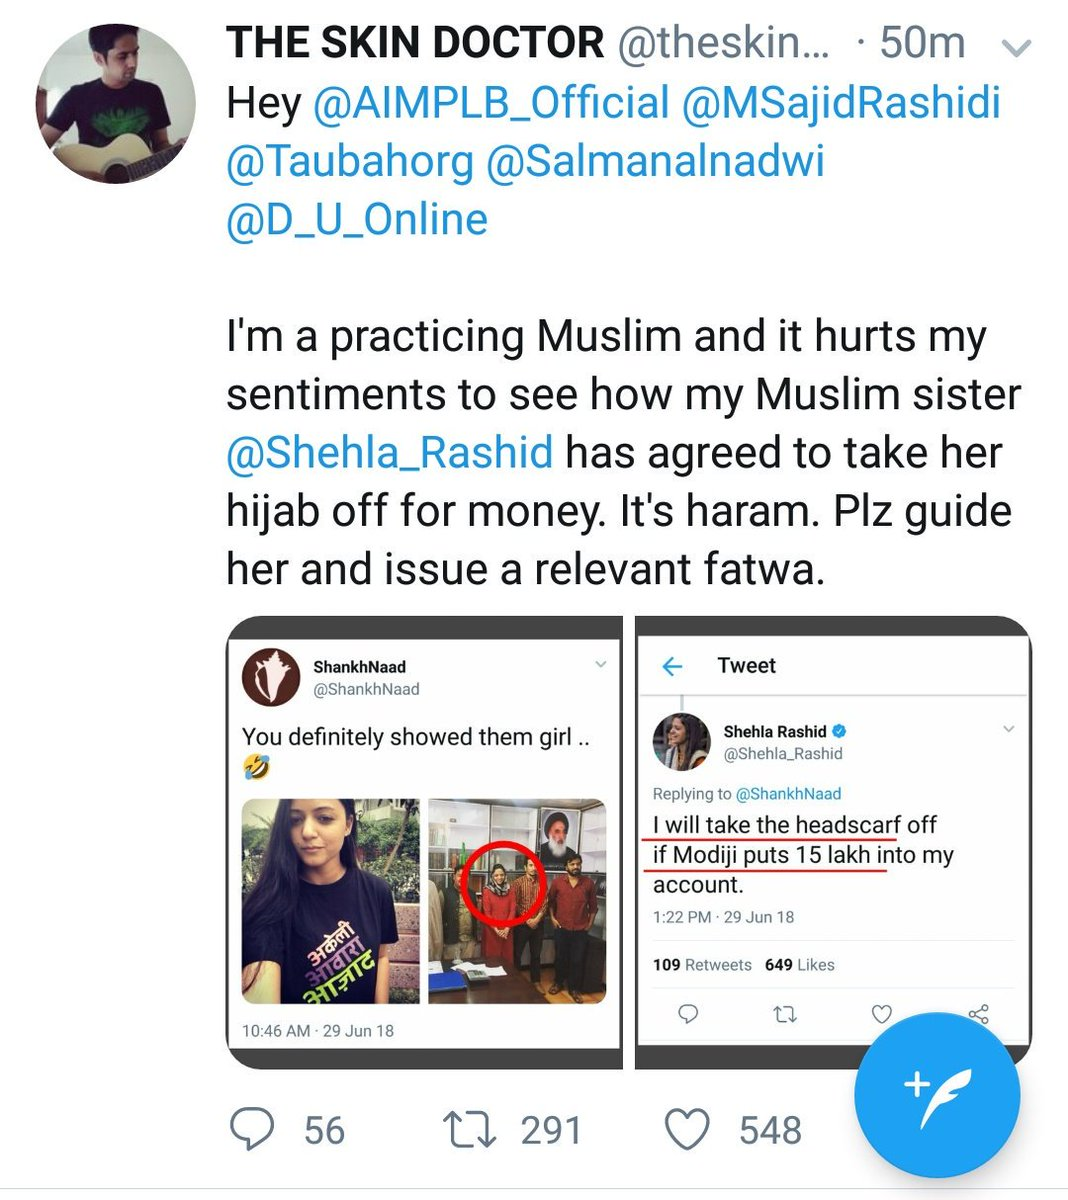 Complained Islamic Was Her To Fatwa Hijab Them Against Remove The theskindoctor13 Money For Shehla breaking Unpaid On Issues A Scholar aimplb Rashid official … After